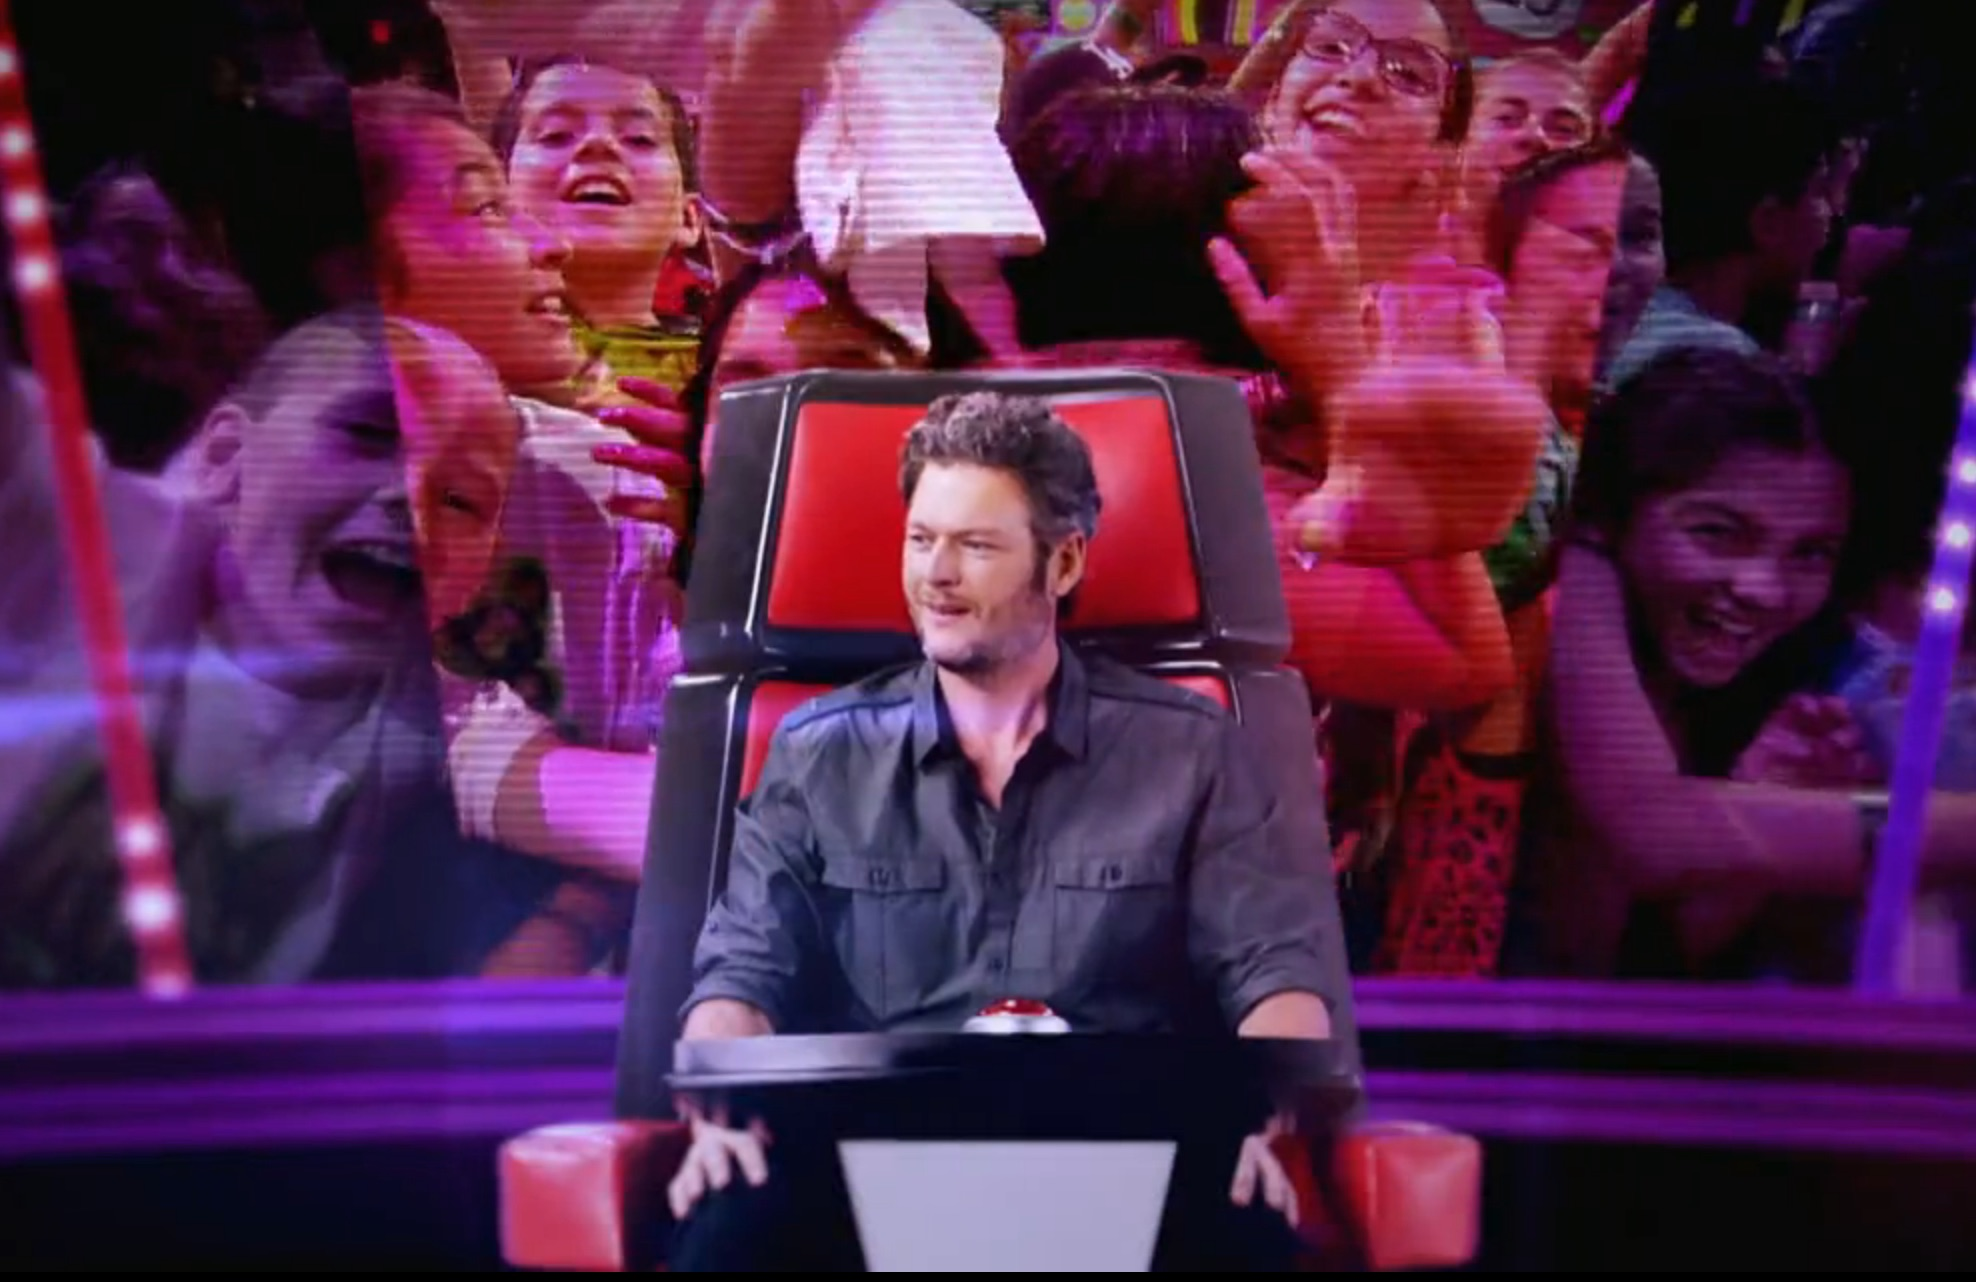 Blake Shelton gets slimed, announces his exciting new hosting gig